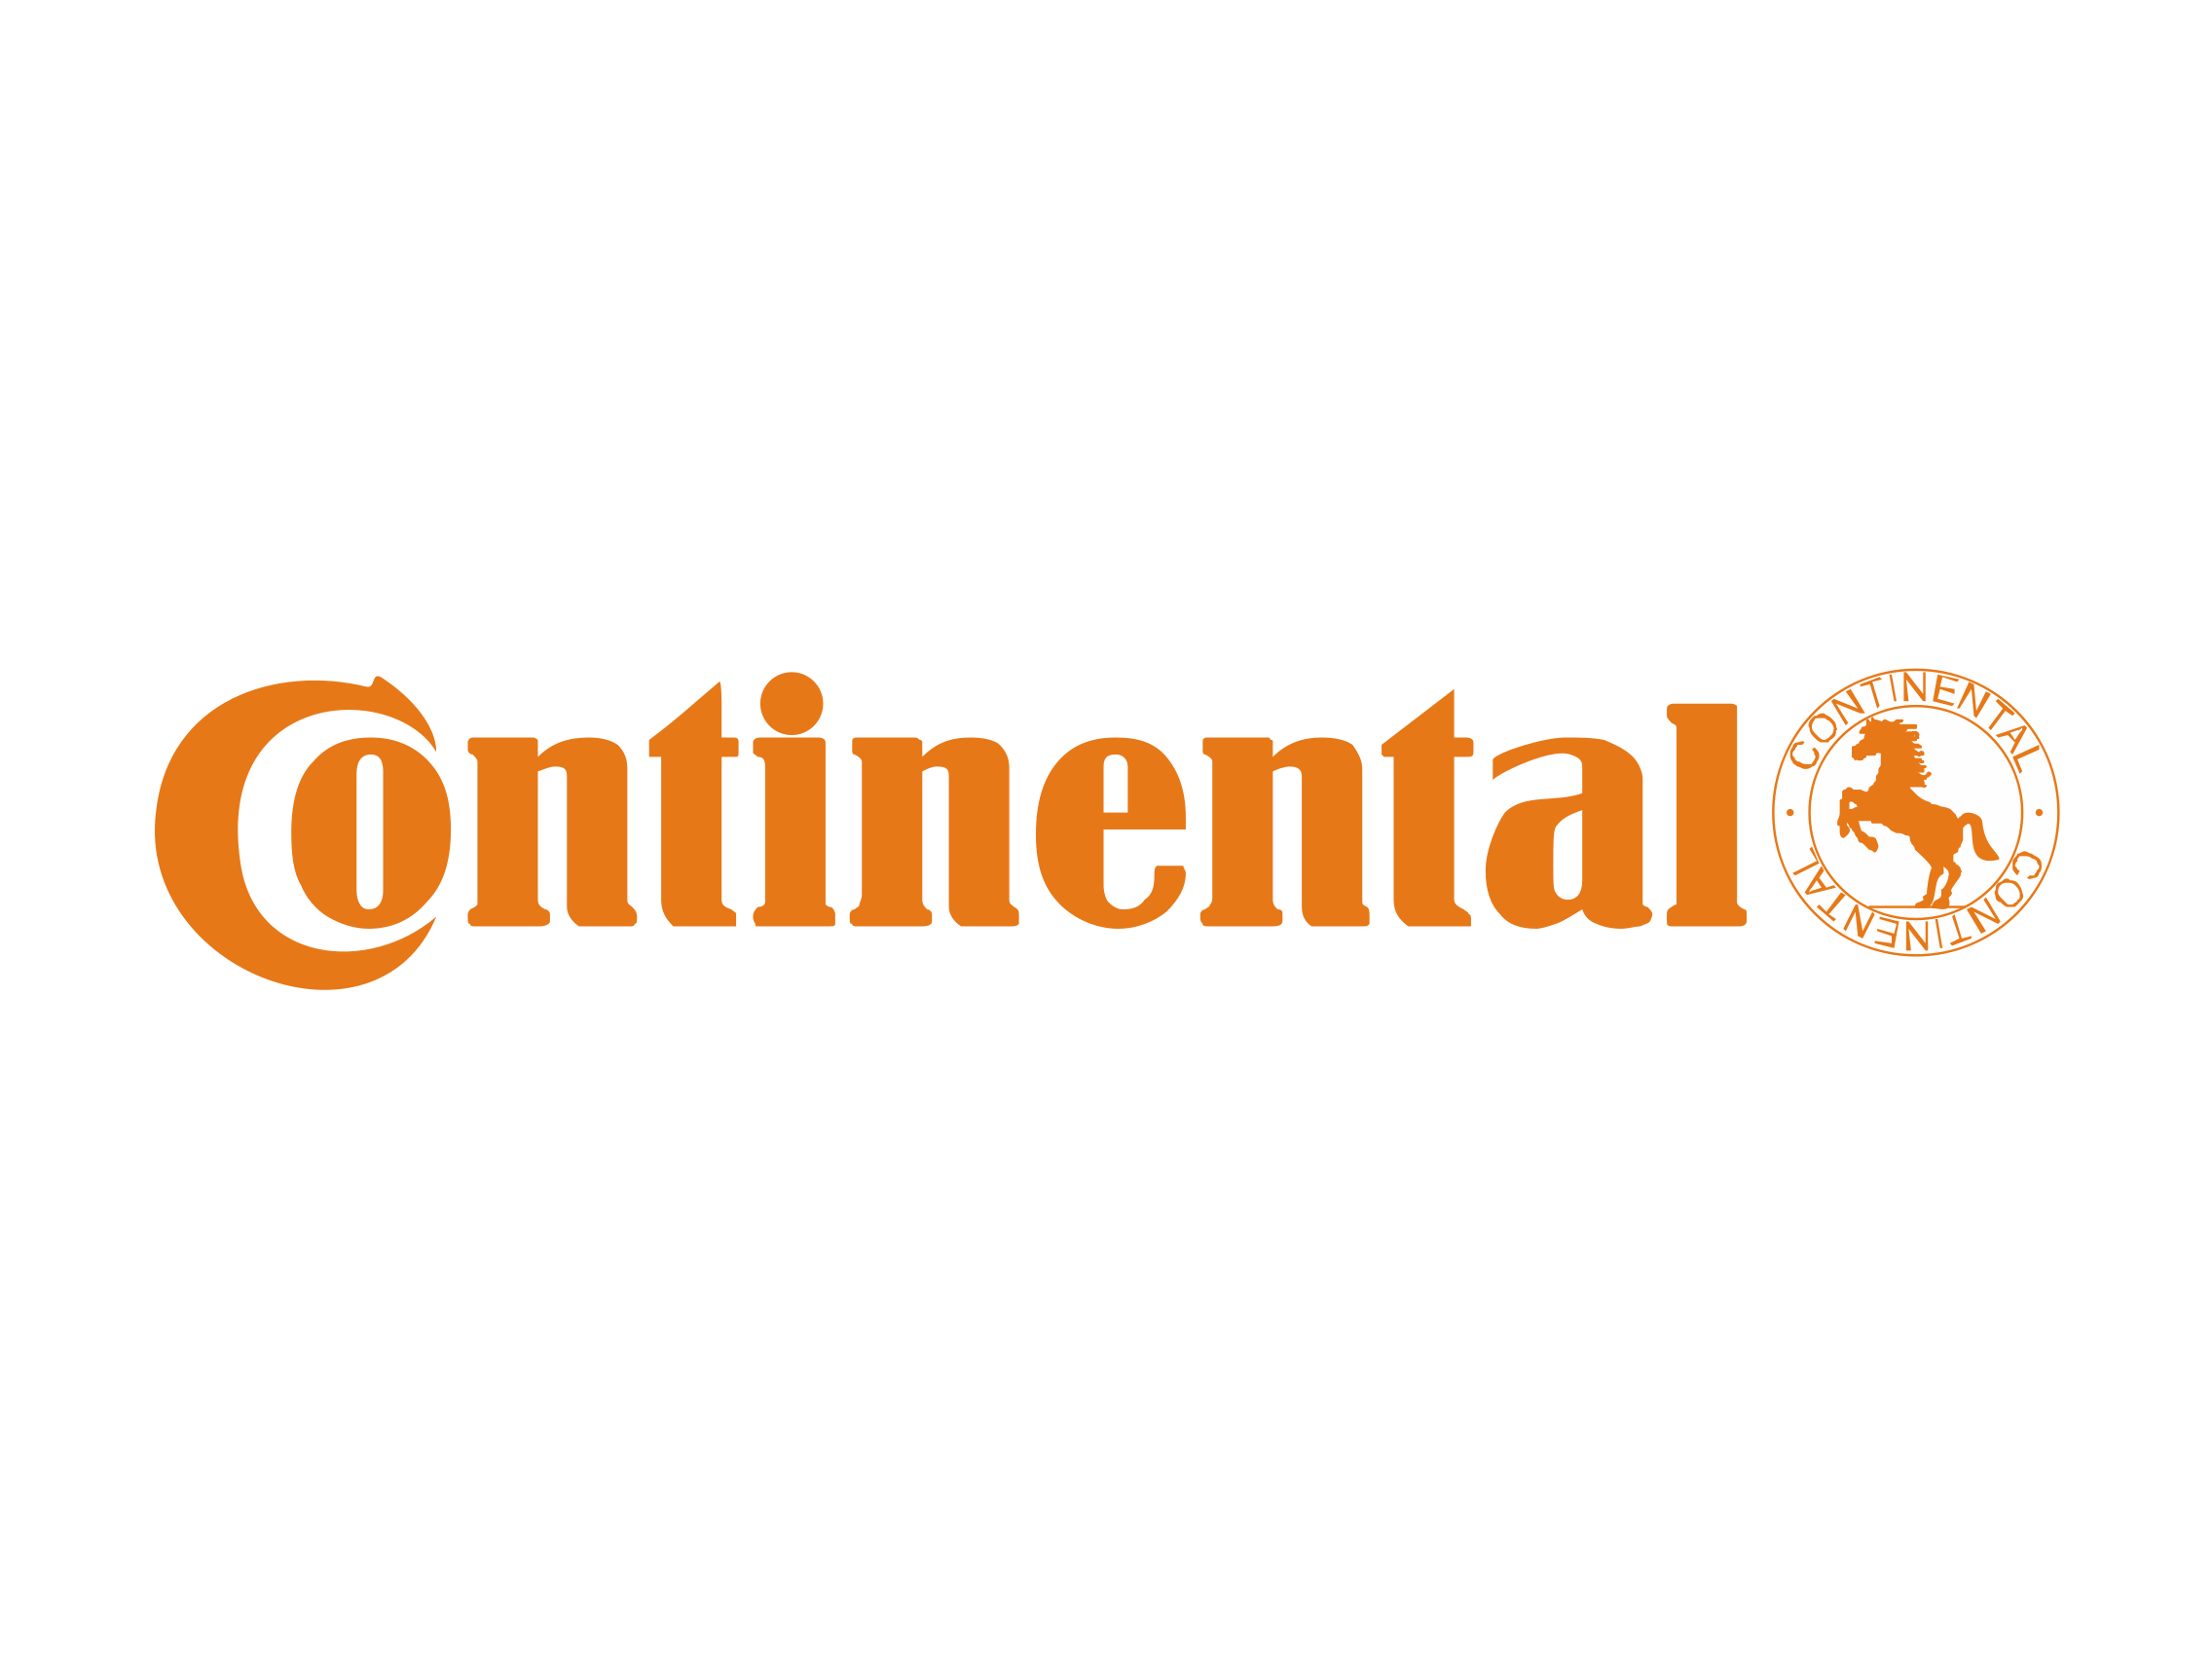 Continental Tires Logo Vector Png - Continental Tires Logo, Transparent background PNG HD thumbnail